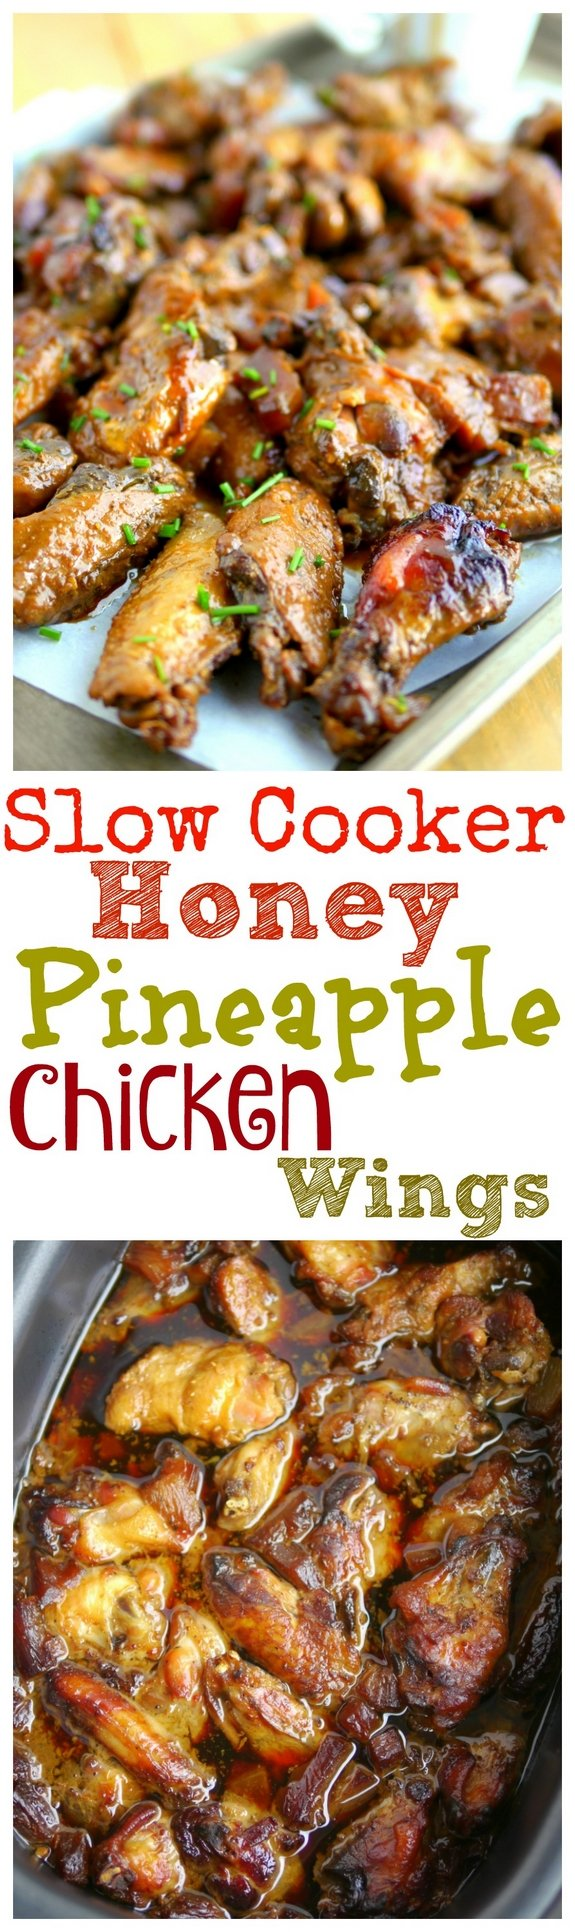 Slow Cooker Honey Pineapple Chicken Wings